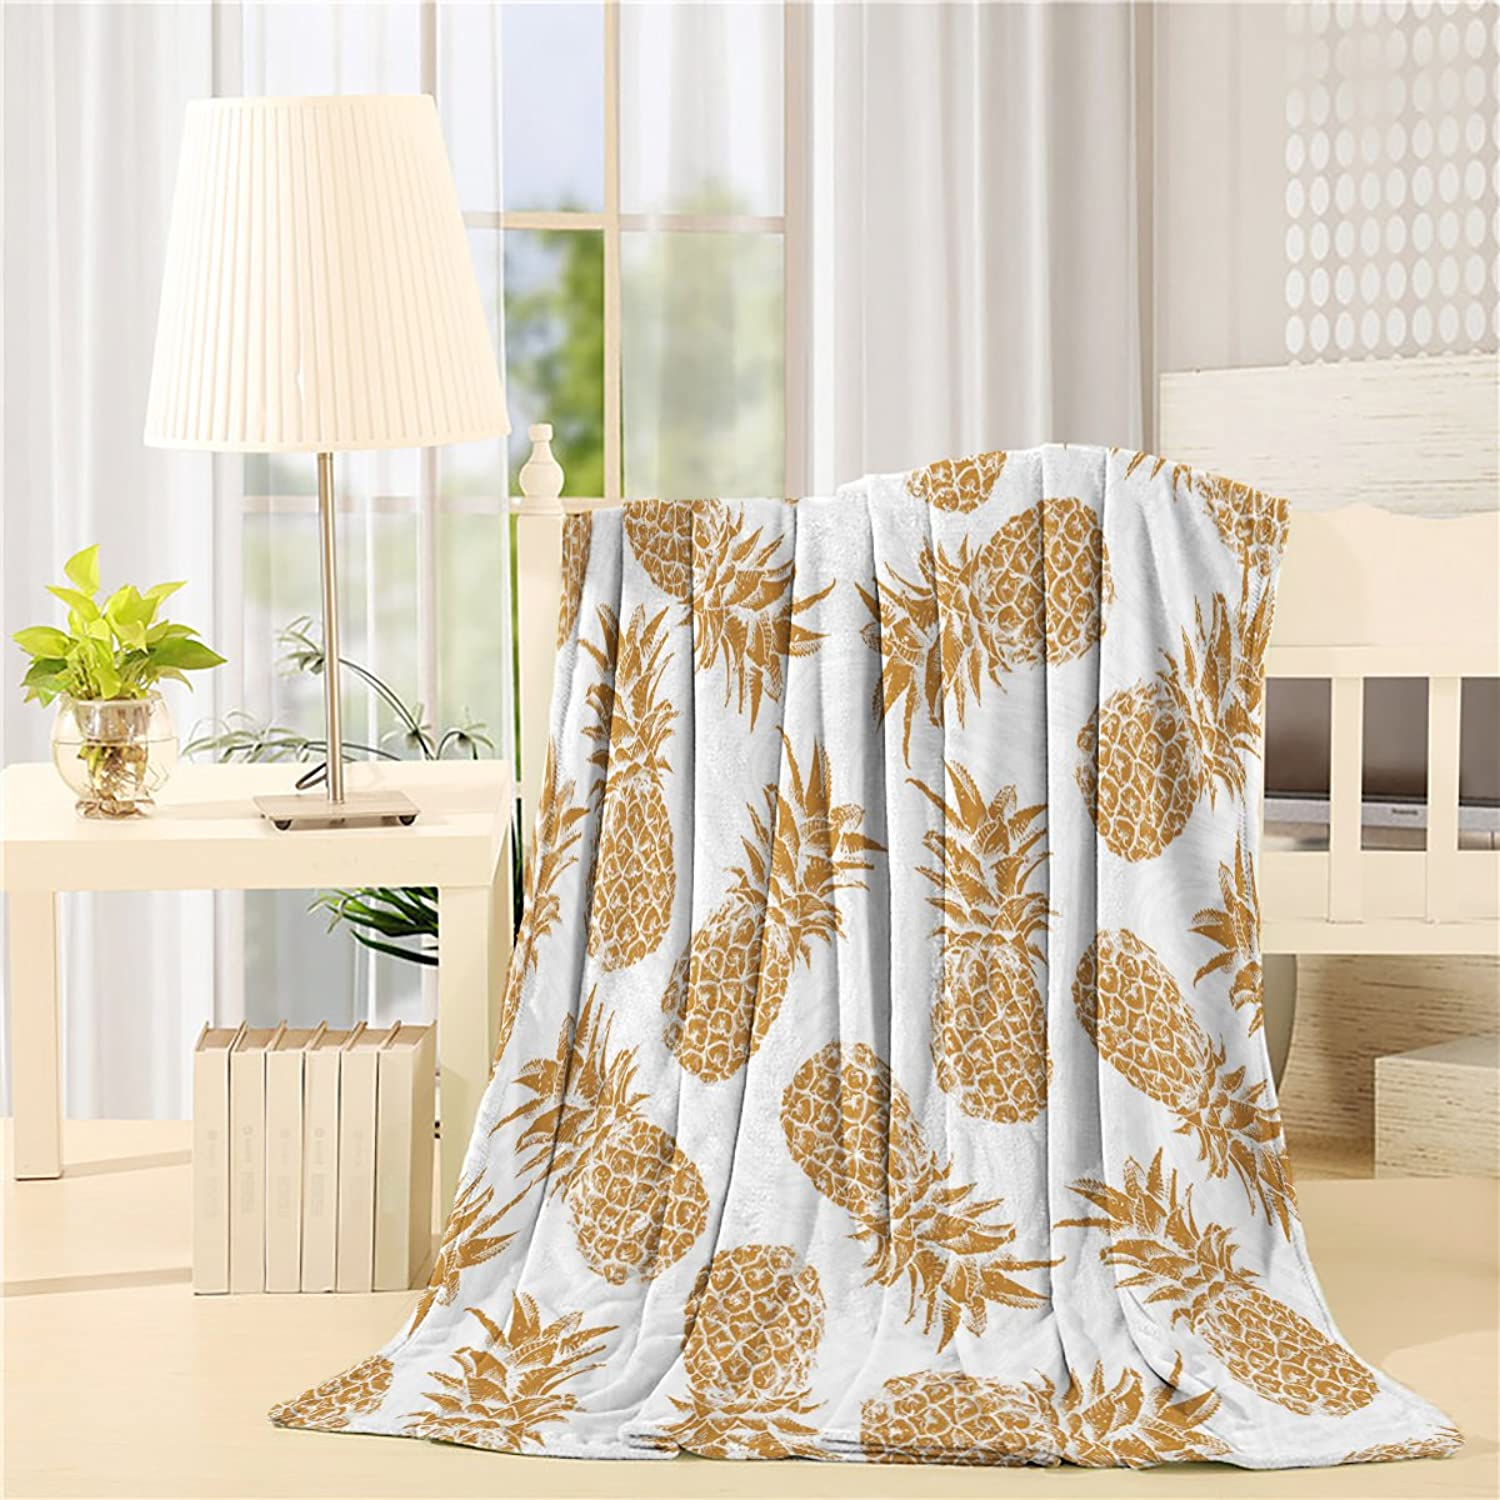 SUN-Shine Luxury Adult Throw Blanket Warm Pineapple Print Soft Toned with Concept Image Multicolor Super Soft Blanket 60x80In By